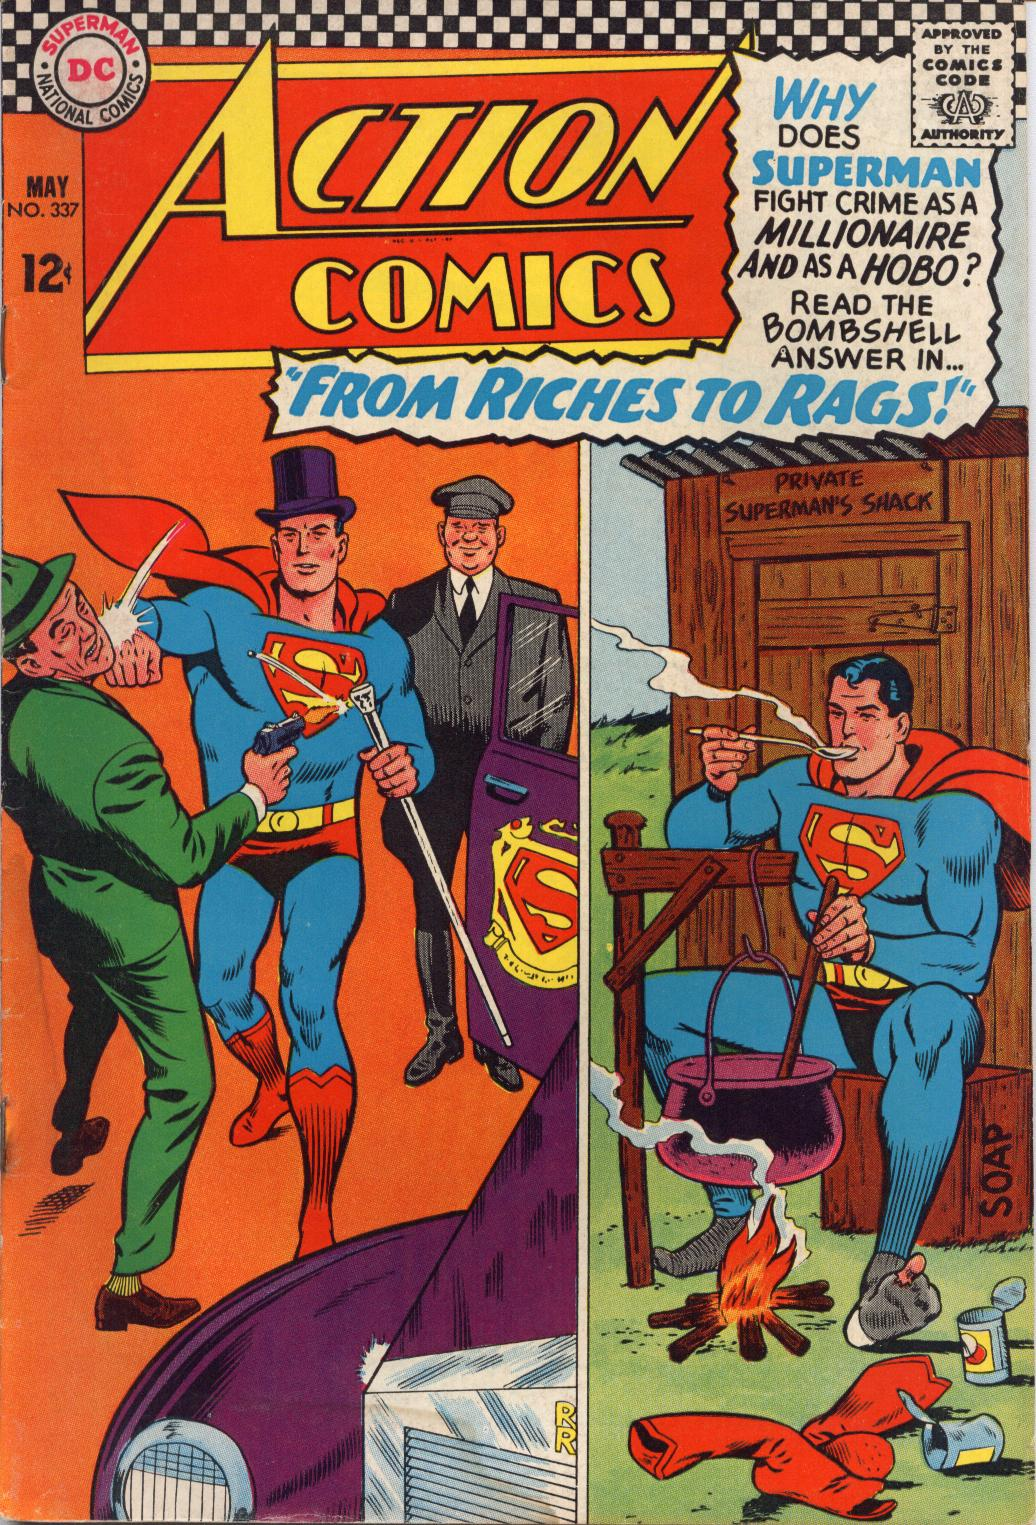 Read online Action Comics (1938) comic -  Issue #337 - 1